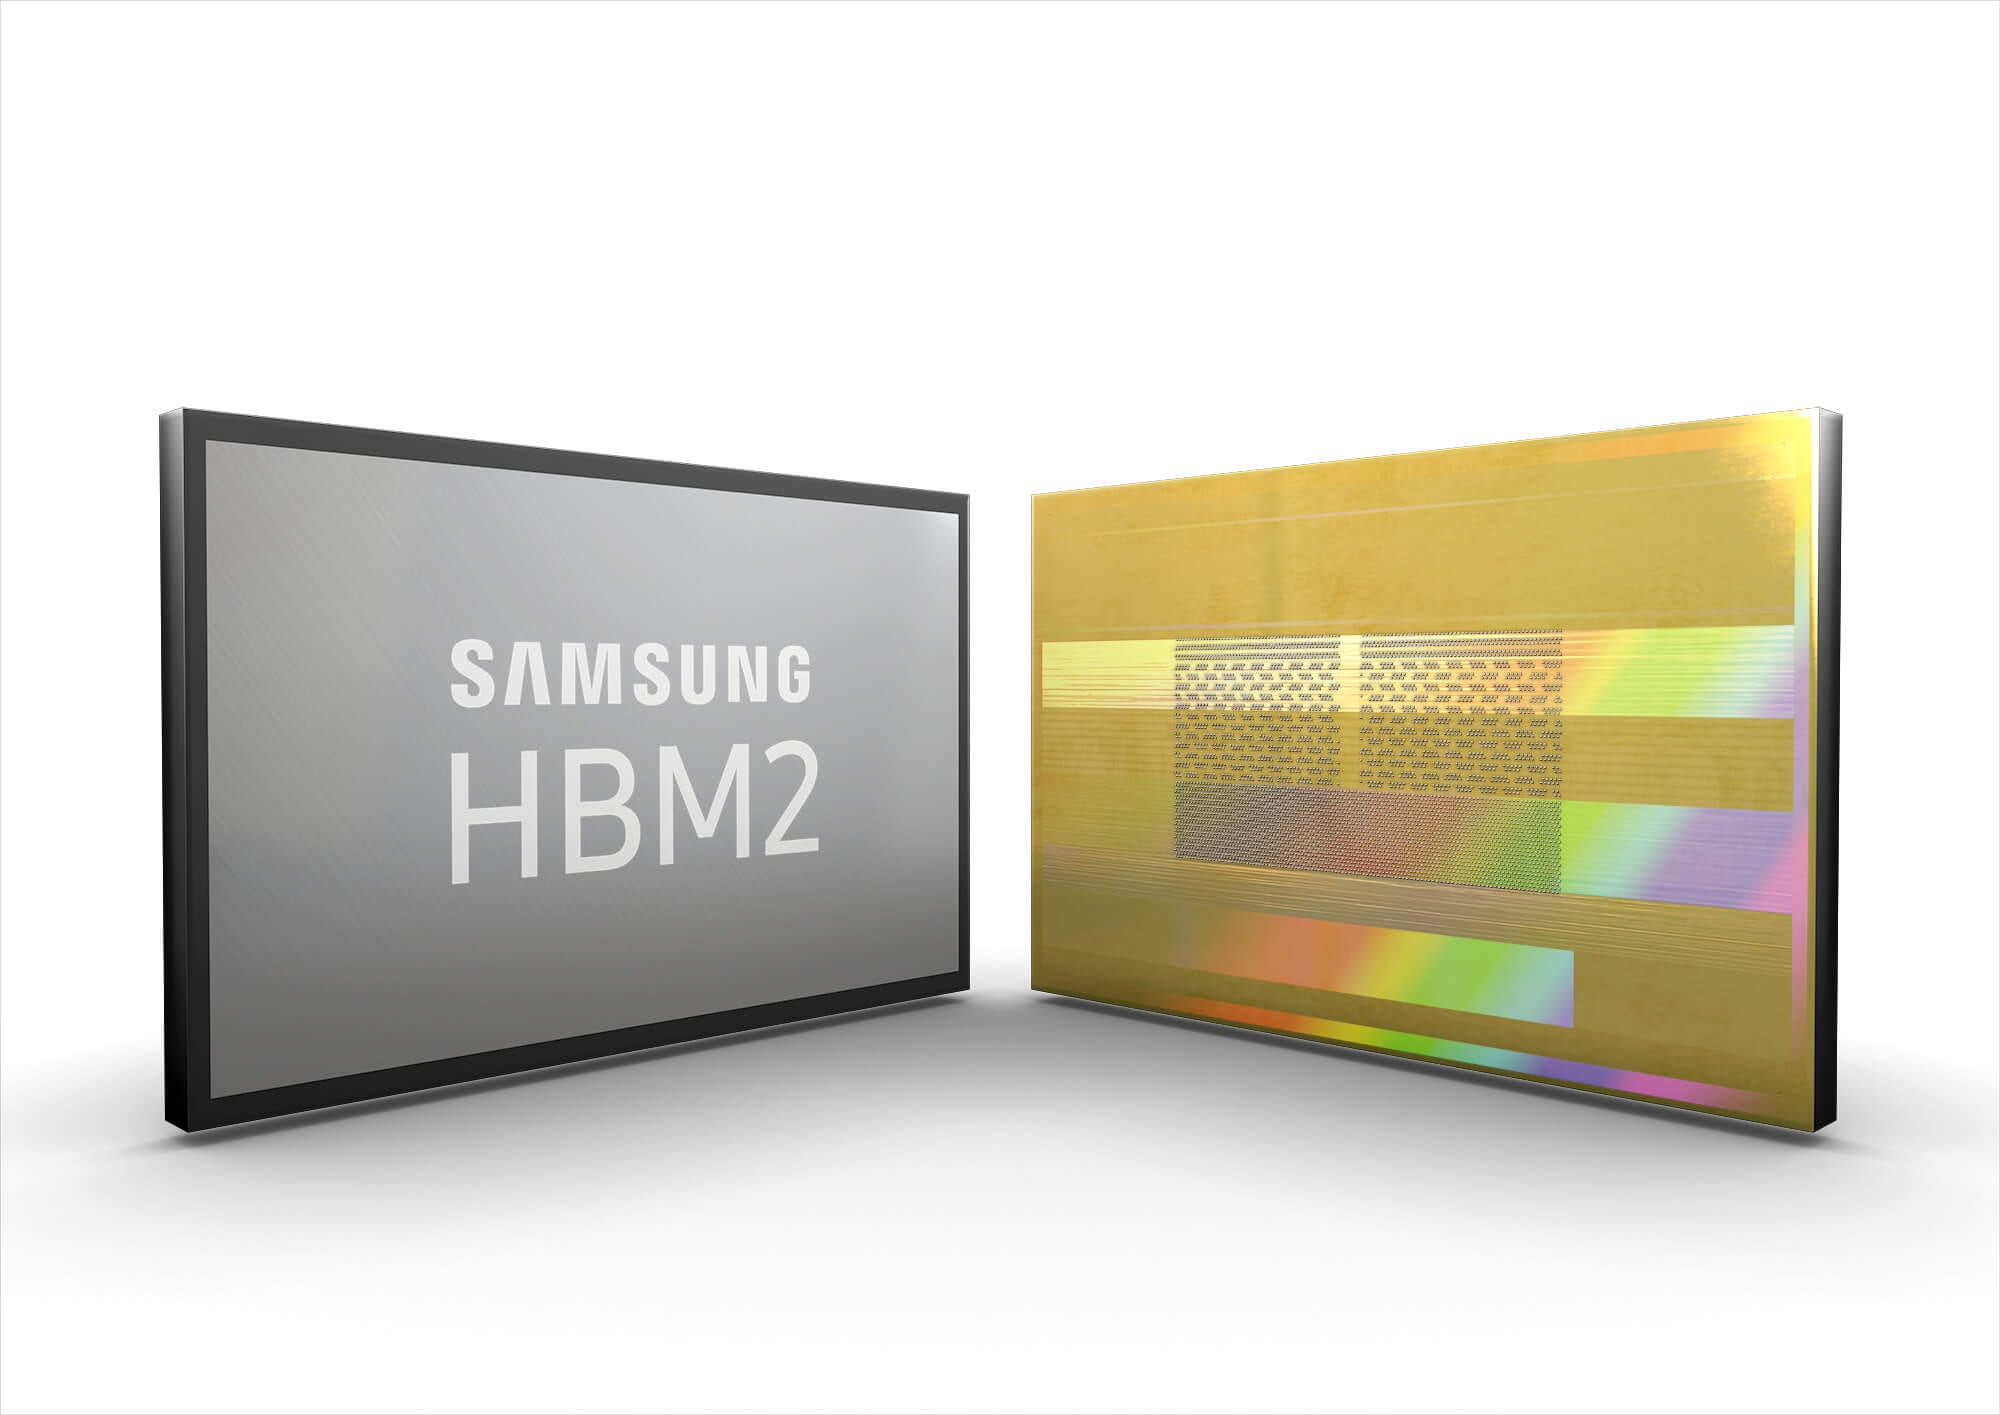 Samsung Semiconductor Memory Business Overview, DRAM, Samsung HBM2